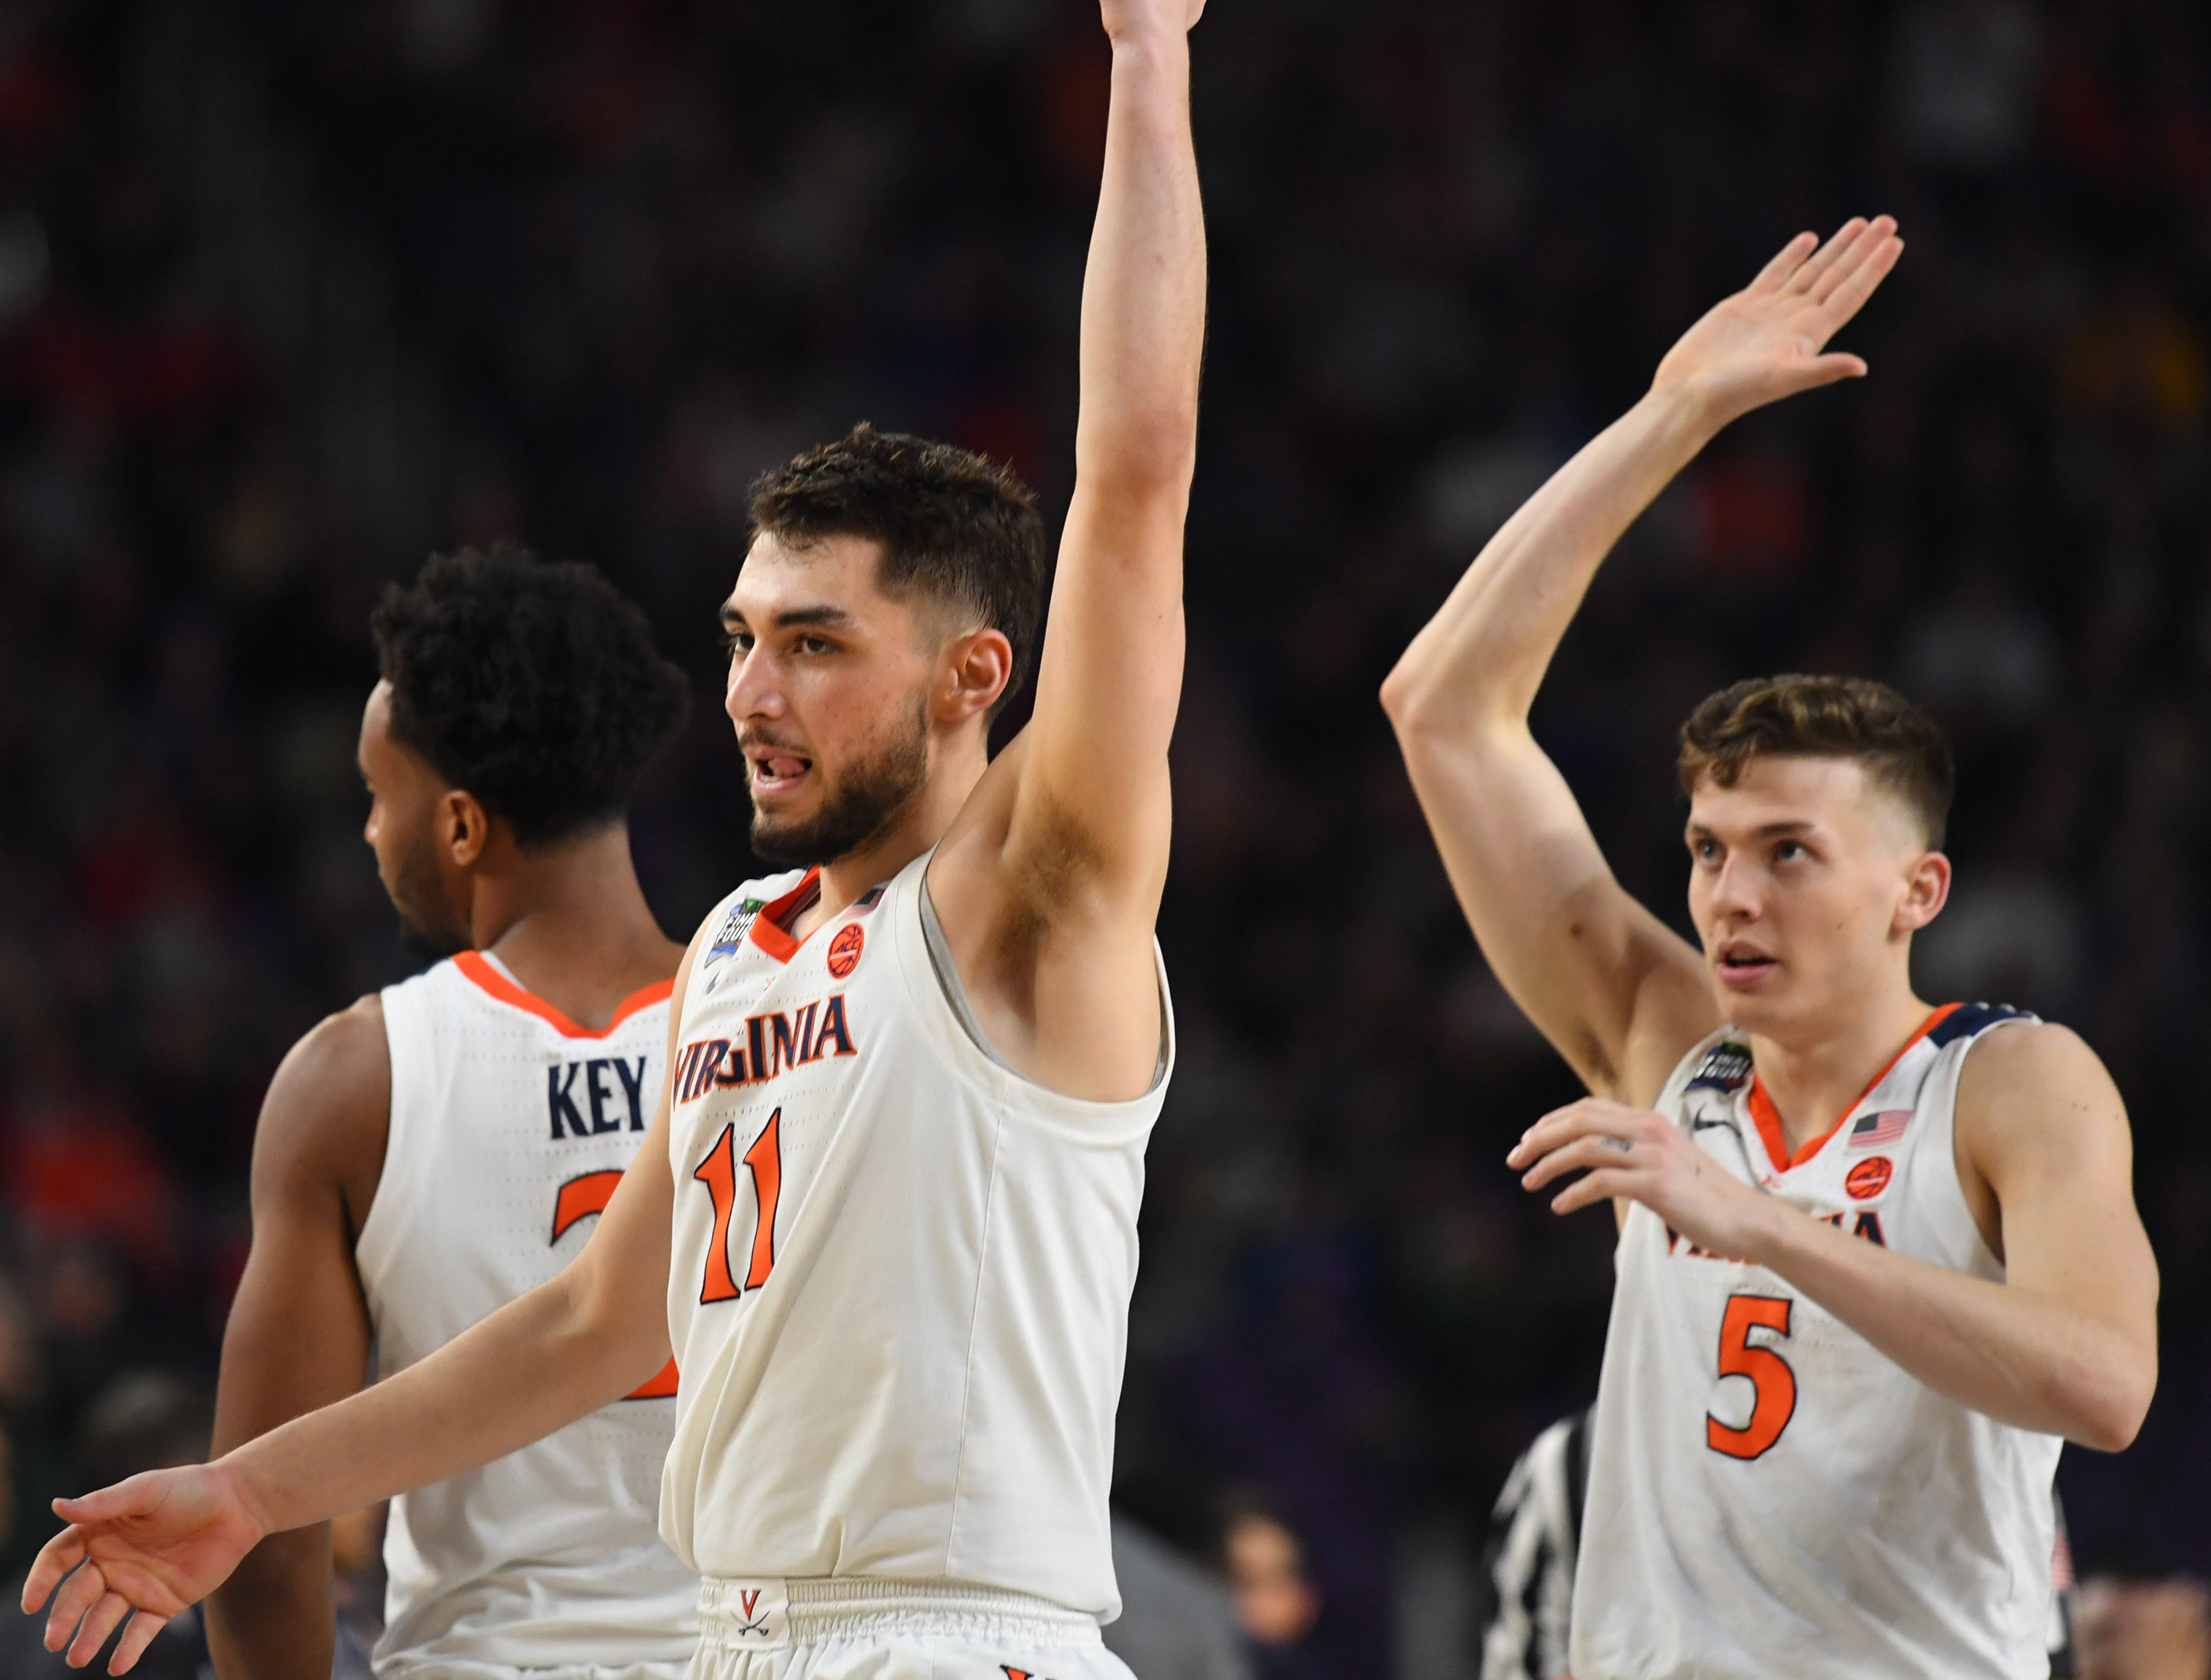 Virginia Cavaliers guard Ty Jerome (11) reacts after hitting a 3-pointer against the Auburn Tigers.